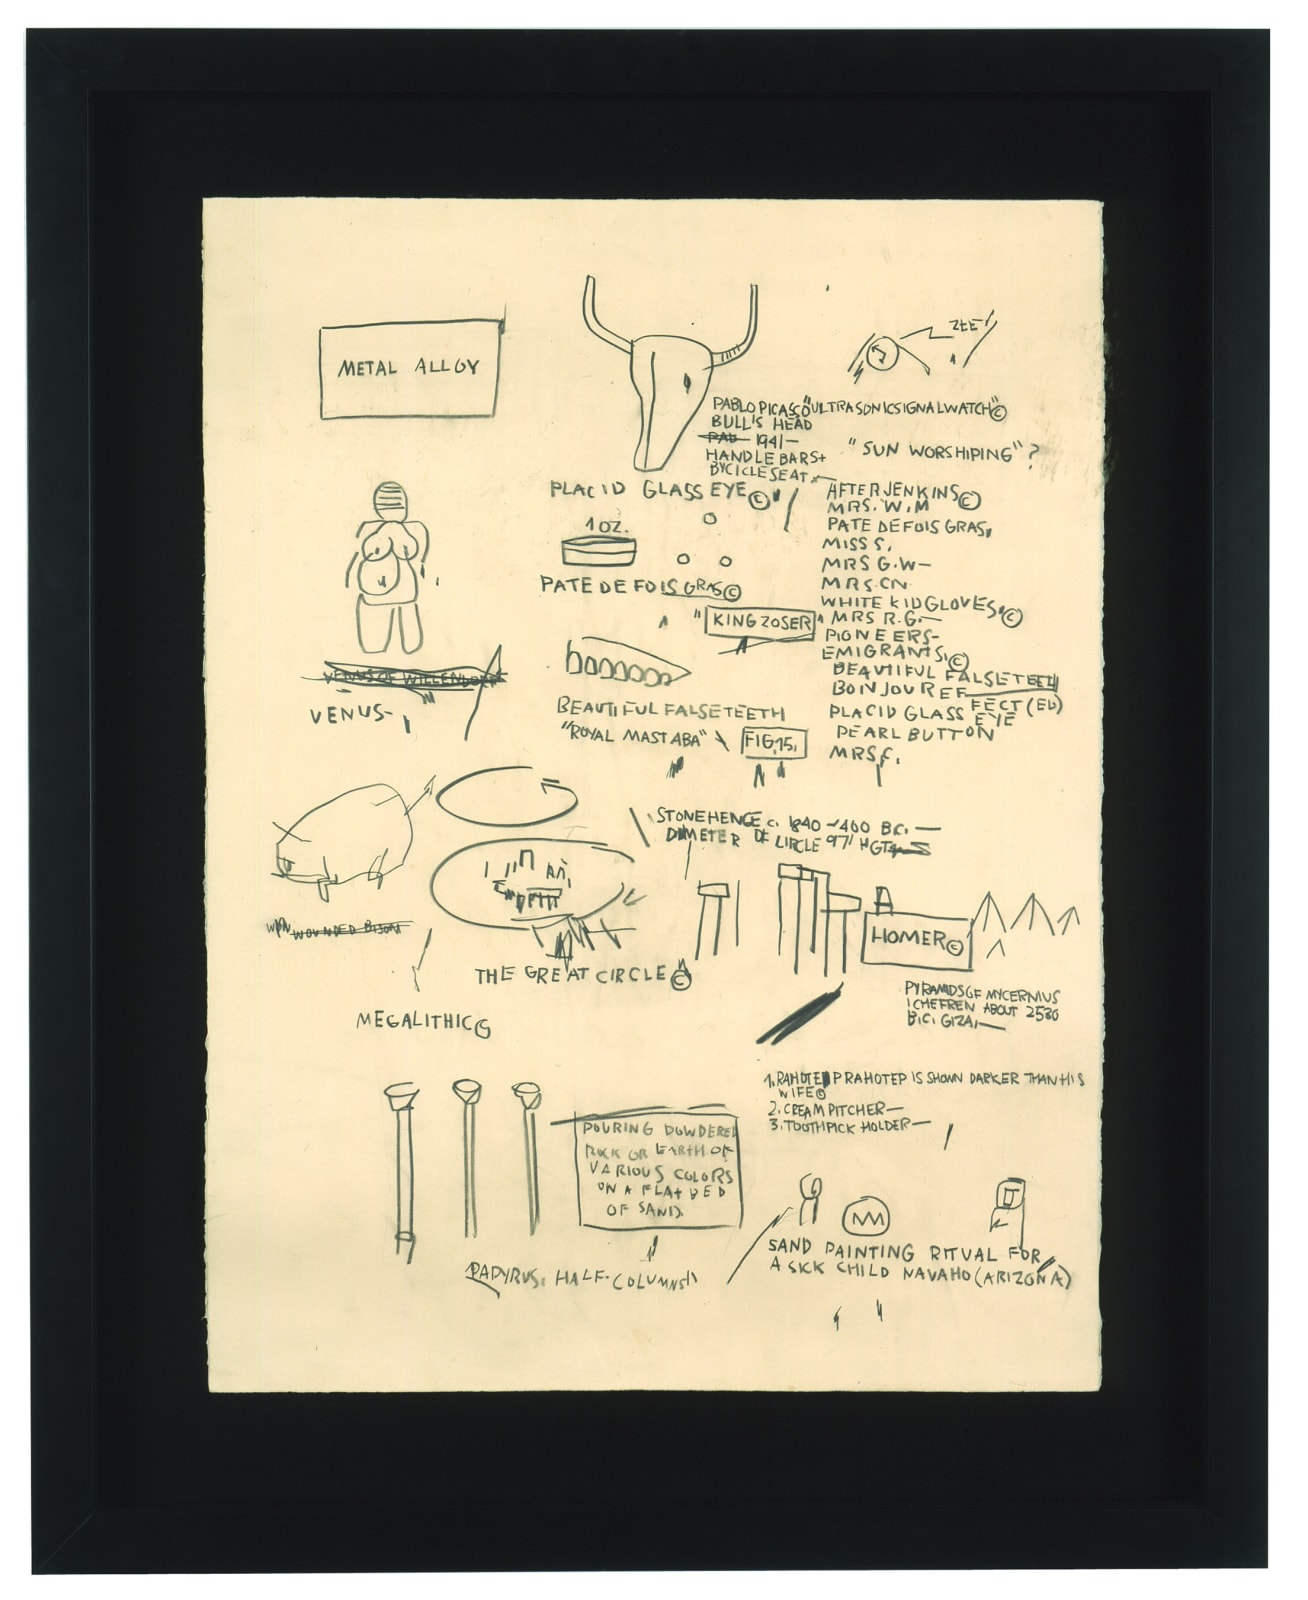 Jean-Michel Basquiat Untitled (Picasso), 1984 Graphite on Paper 76.2 x 57.1 cm